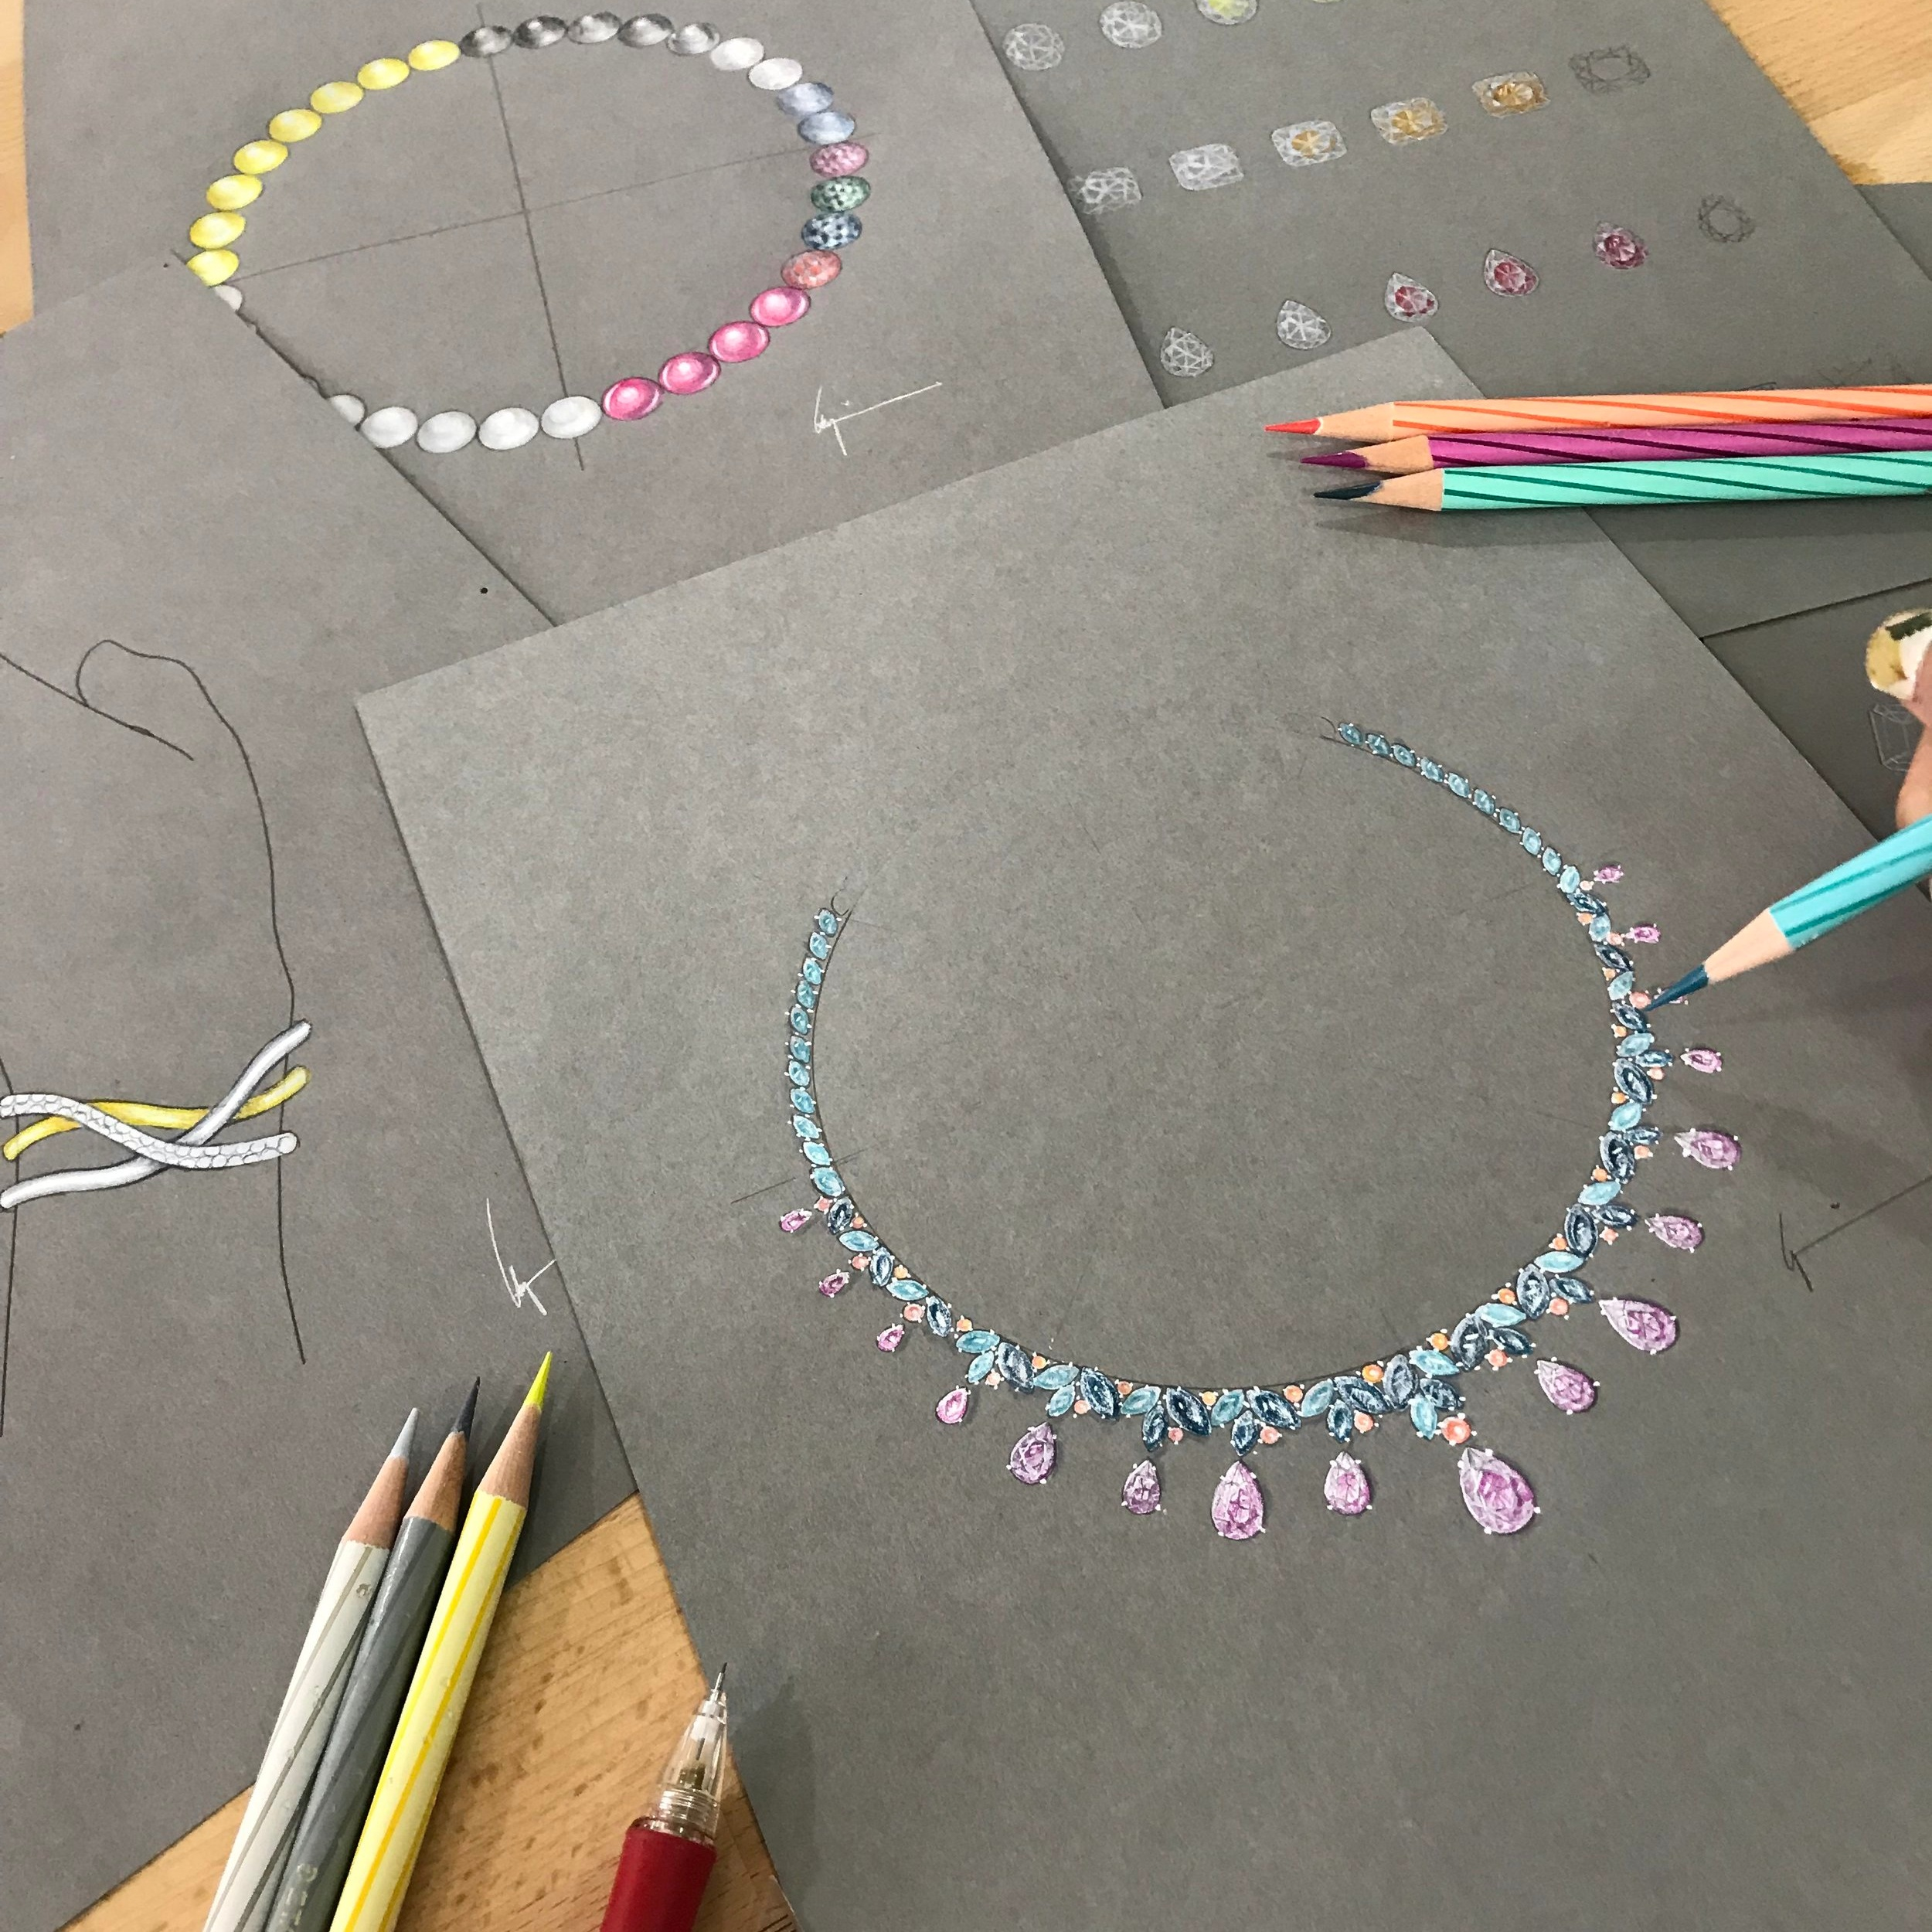 Jewellery Design Level 1 - This 6-day course covers drawing and rendering metals and gemstones using coloured pencils